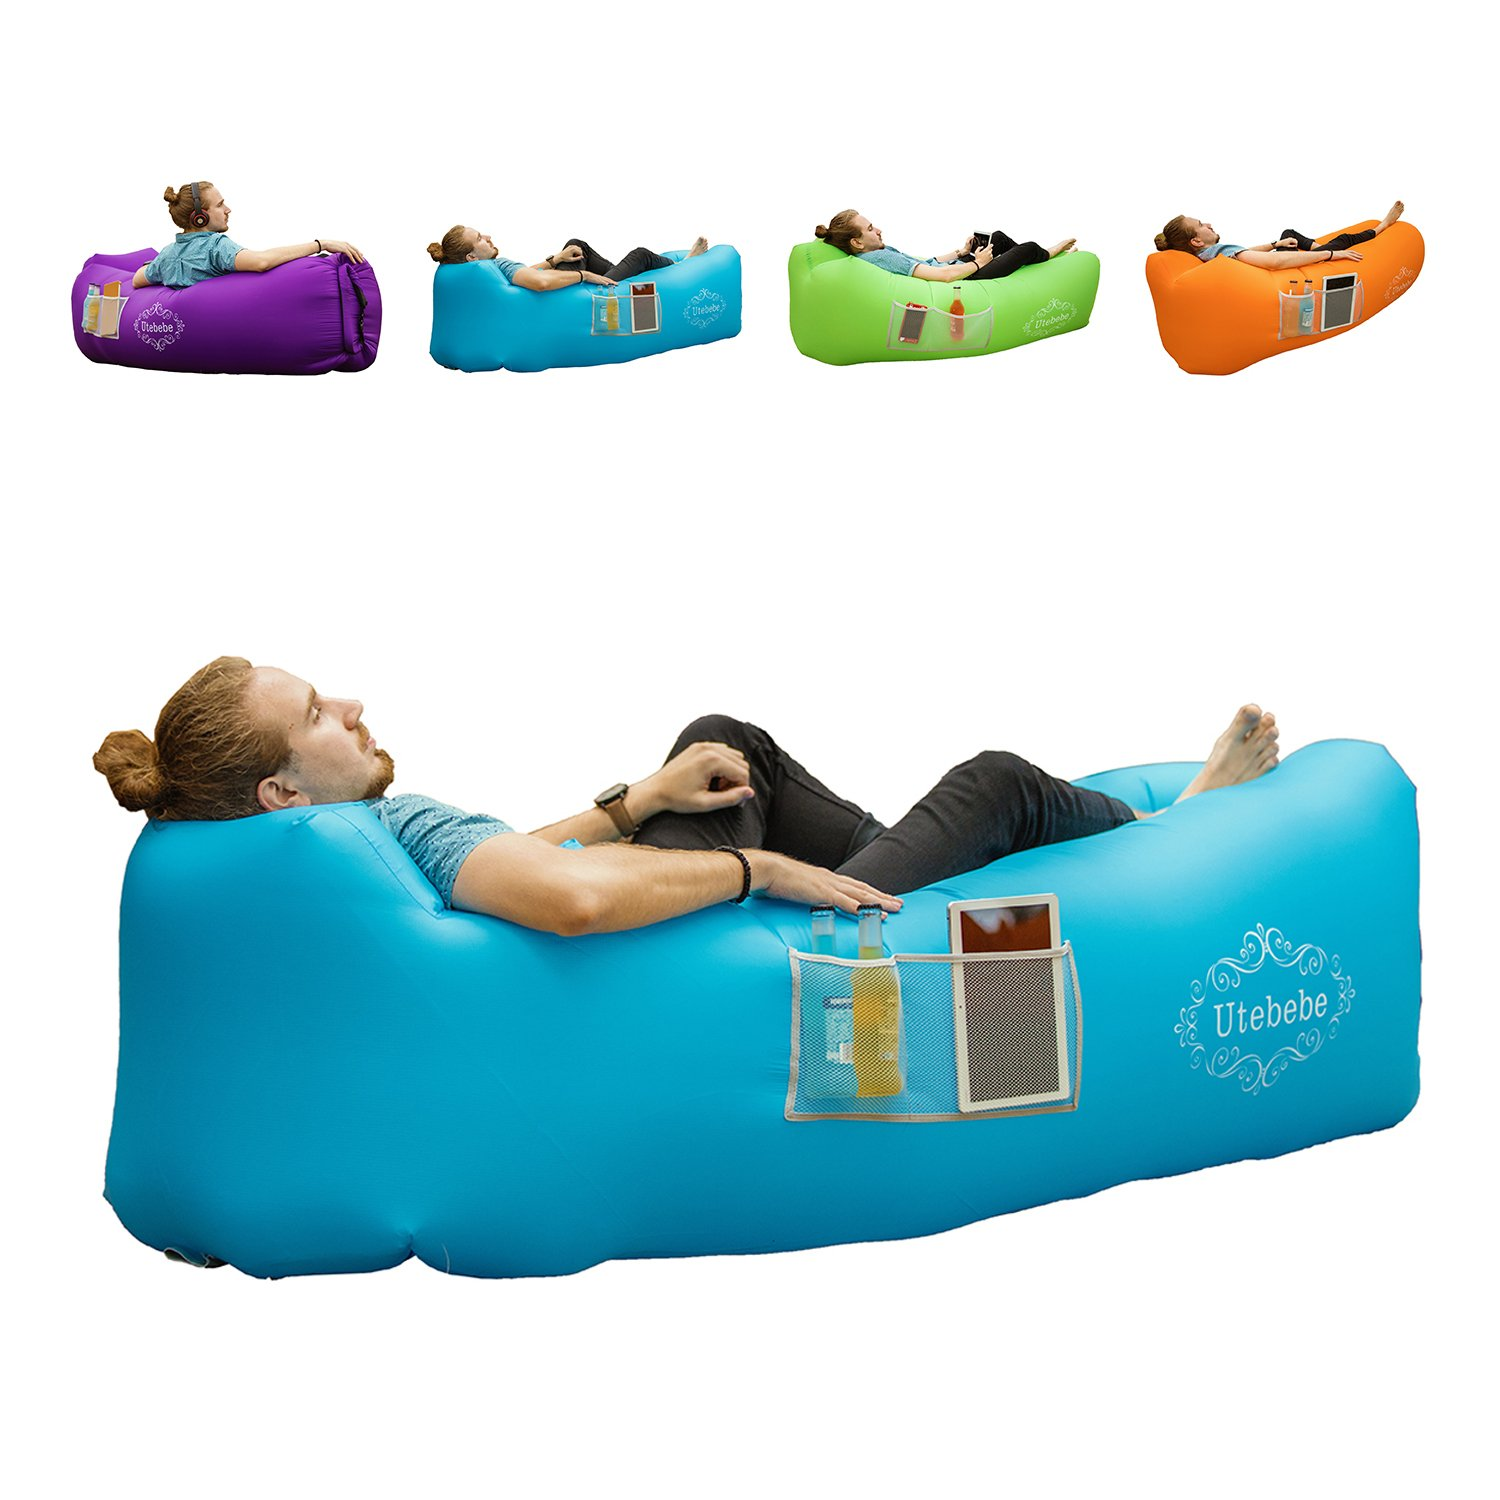 Utebebe Inflatable Lounger Air Sofa Couch Chair Outdoor Lazy Bag